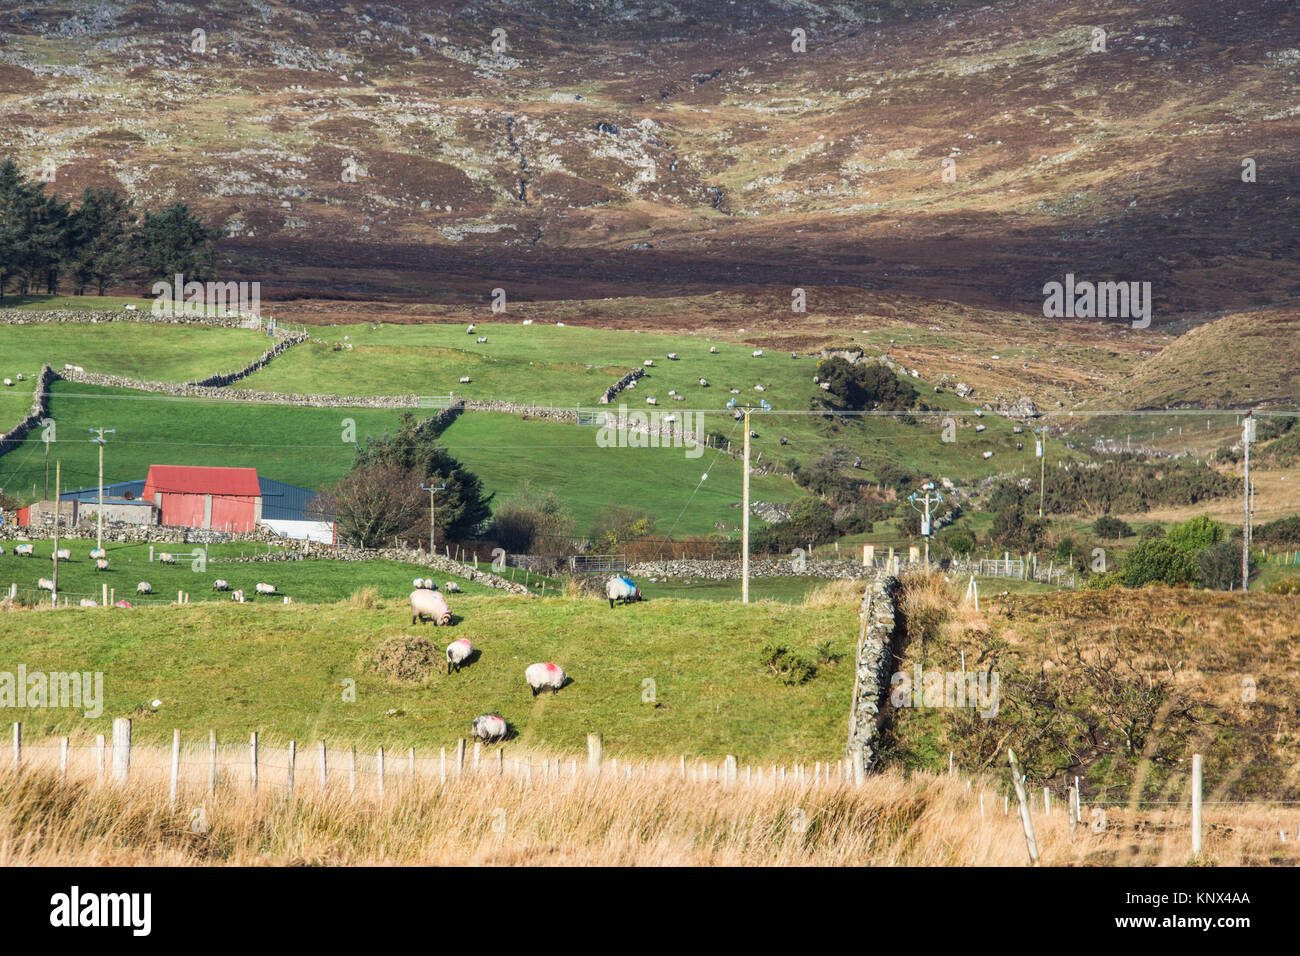 Sheep grazing in a field in rural Republic of Ireland - Stock Image